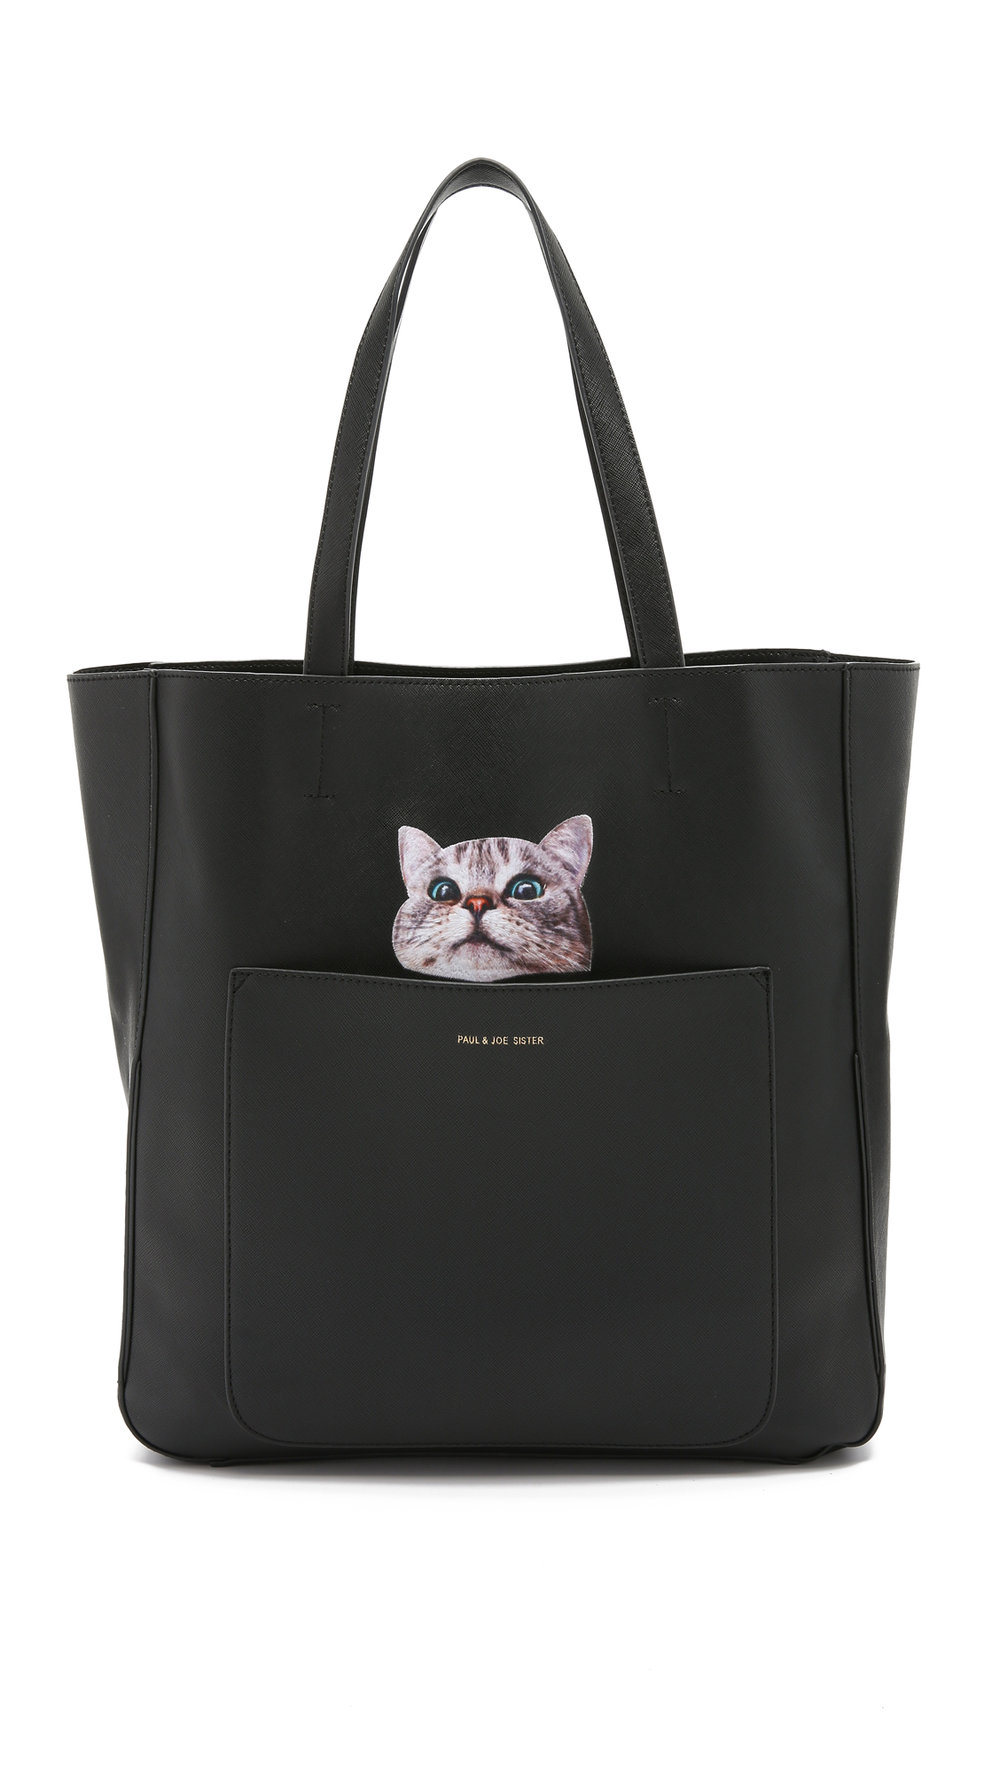 paul + joe sister tote